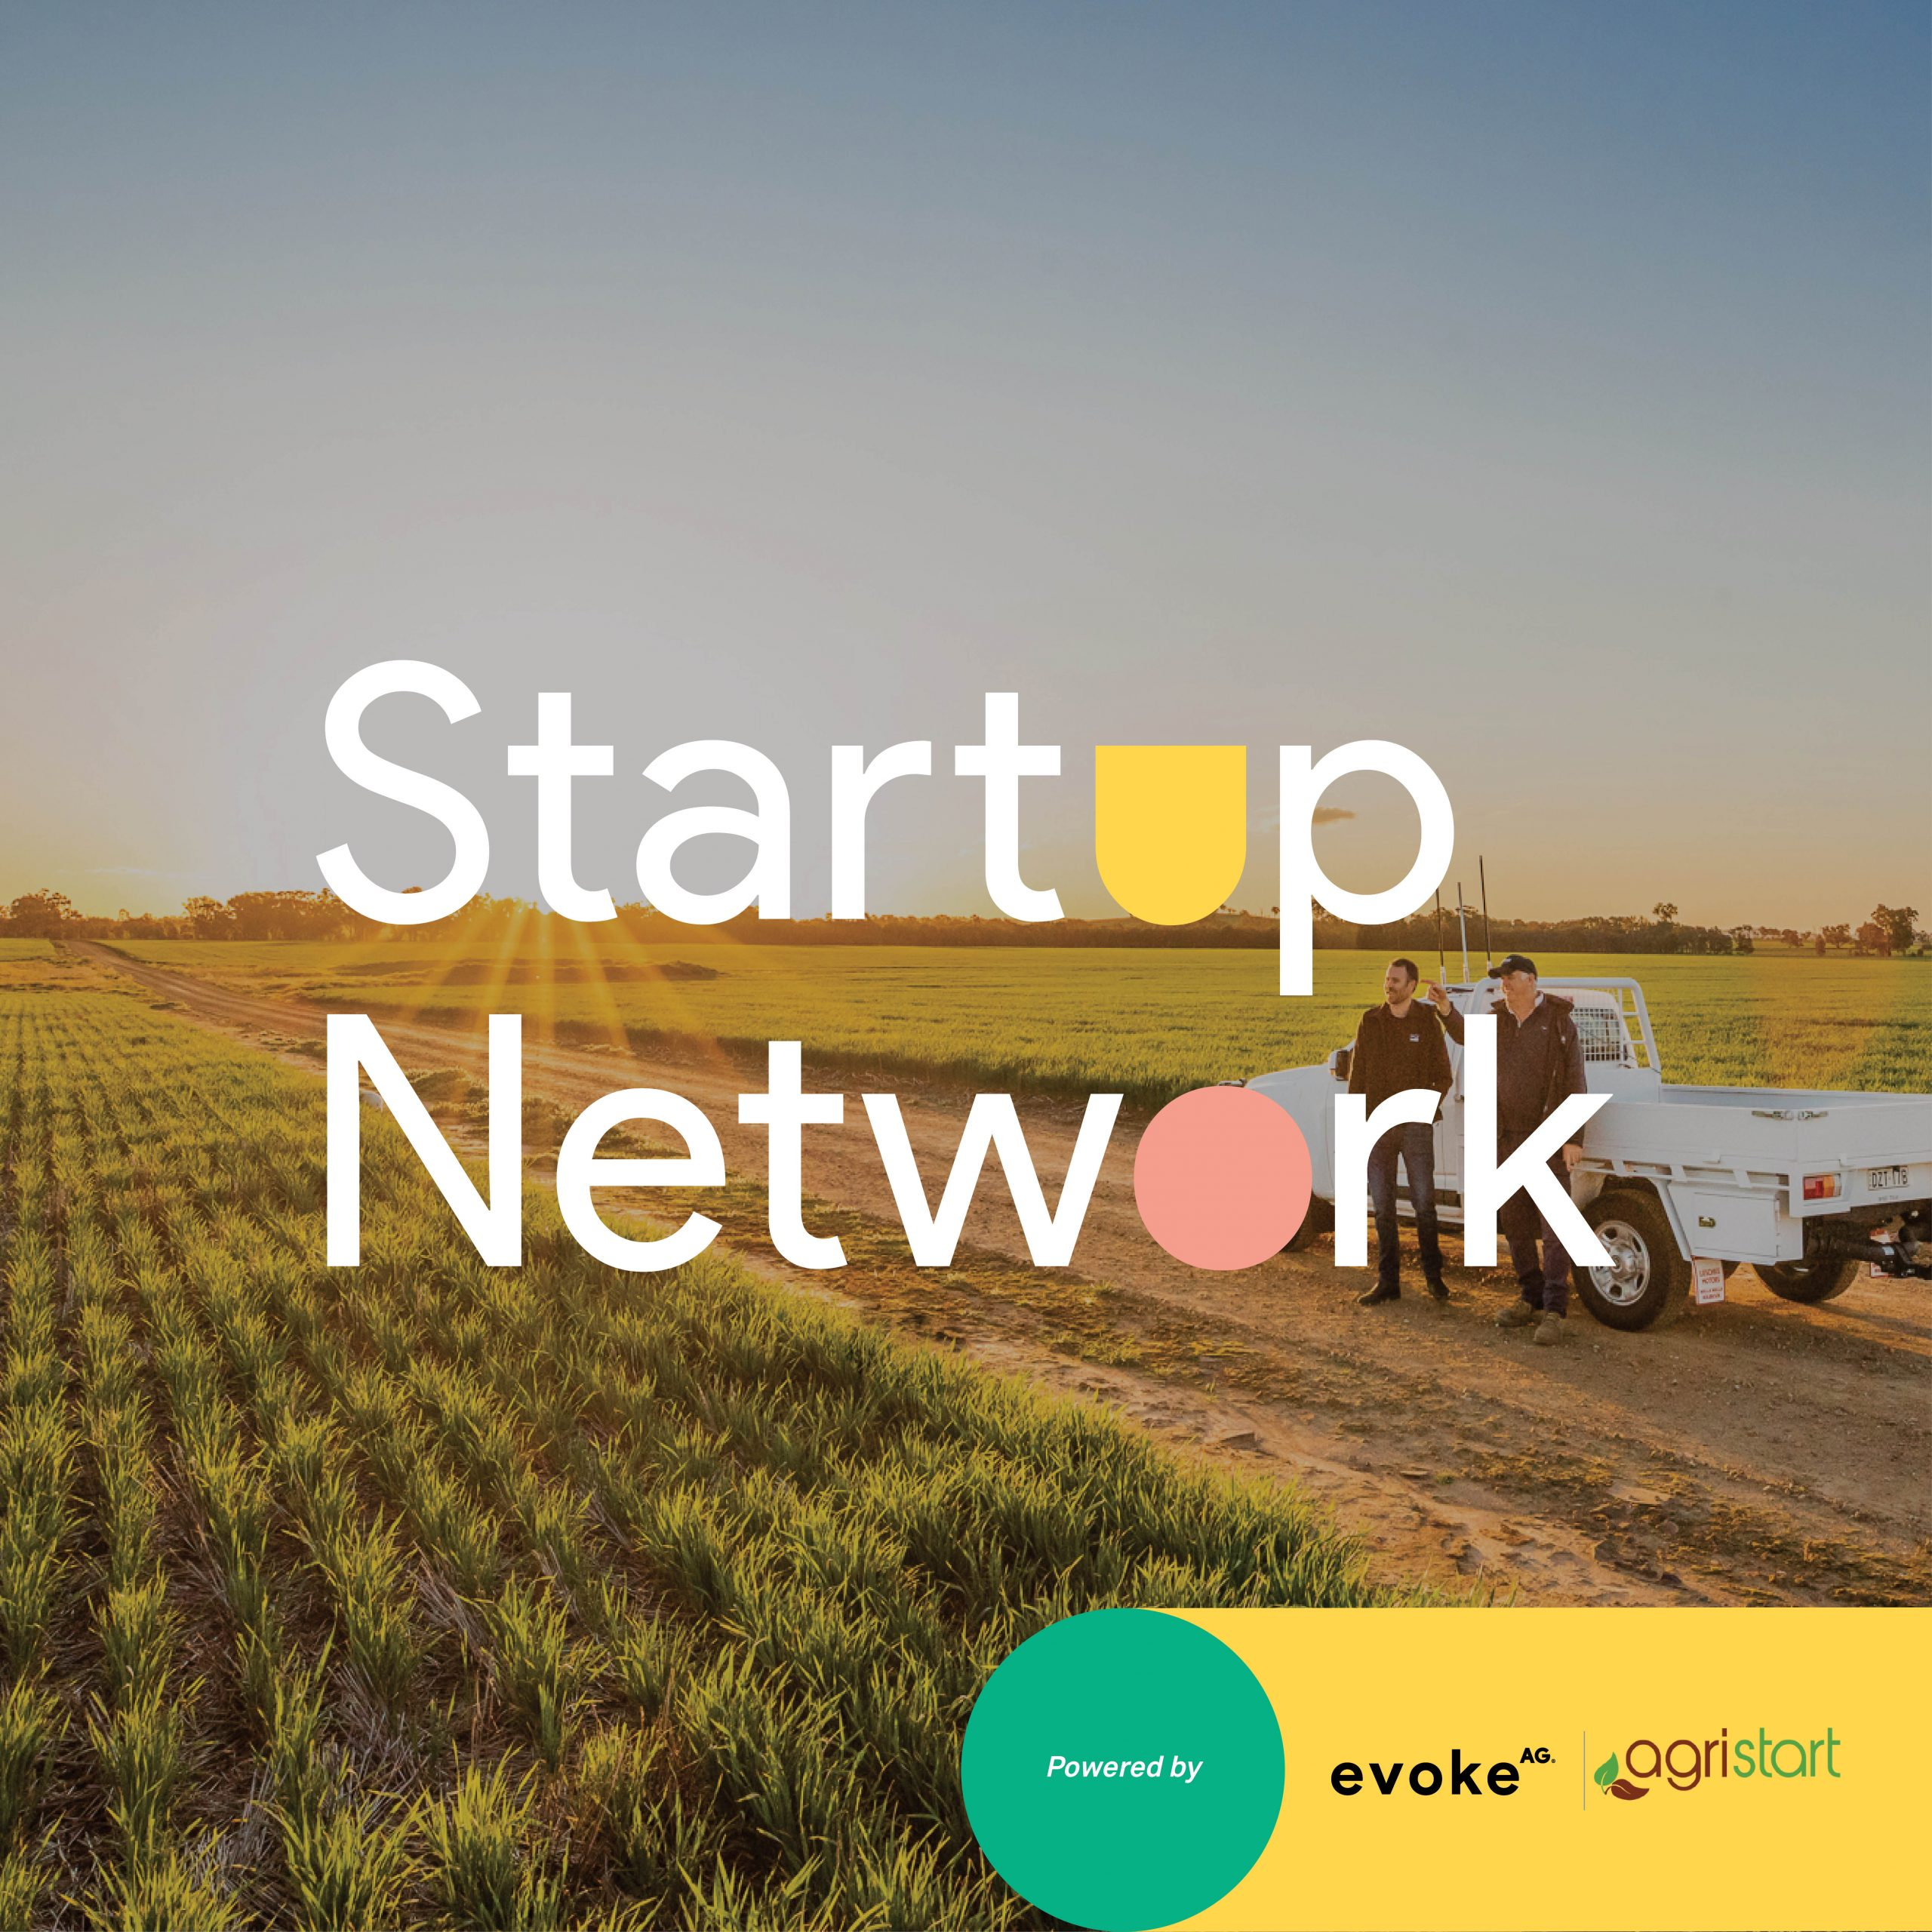 Startup Network_General Image 2 _Square2